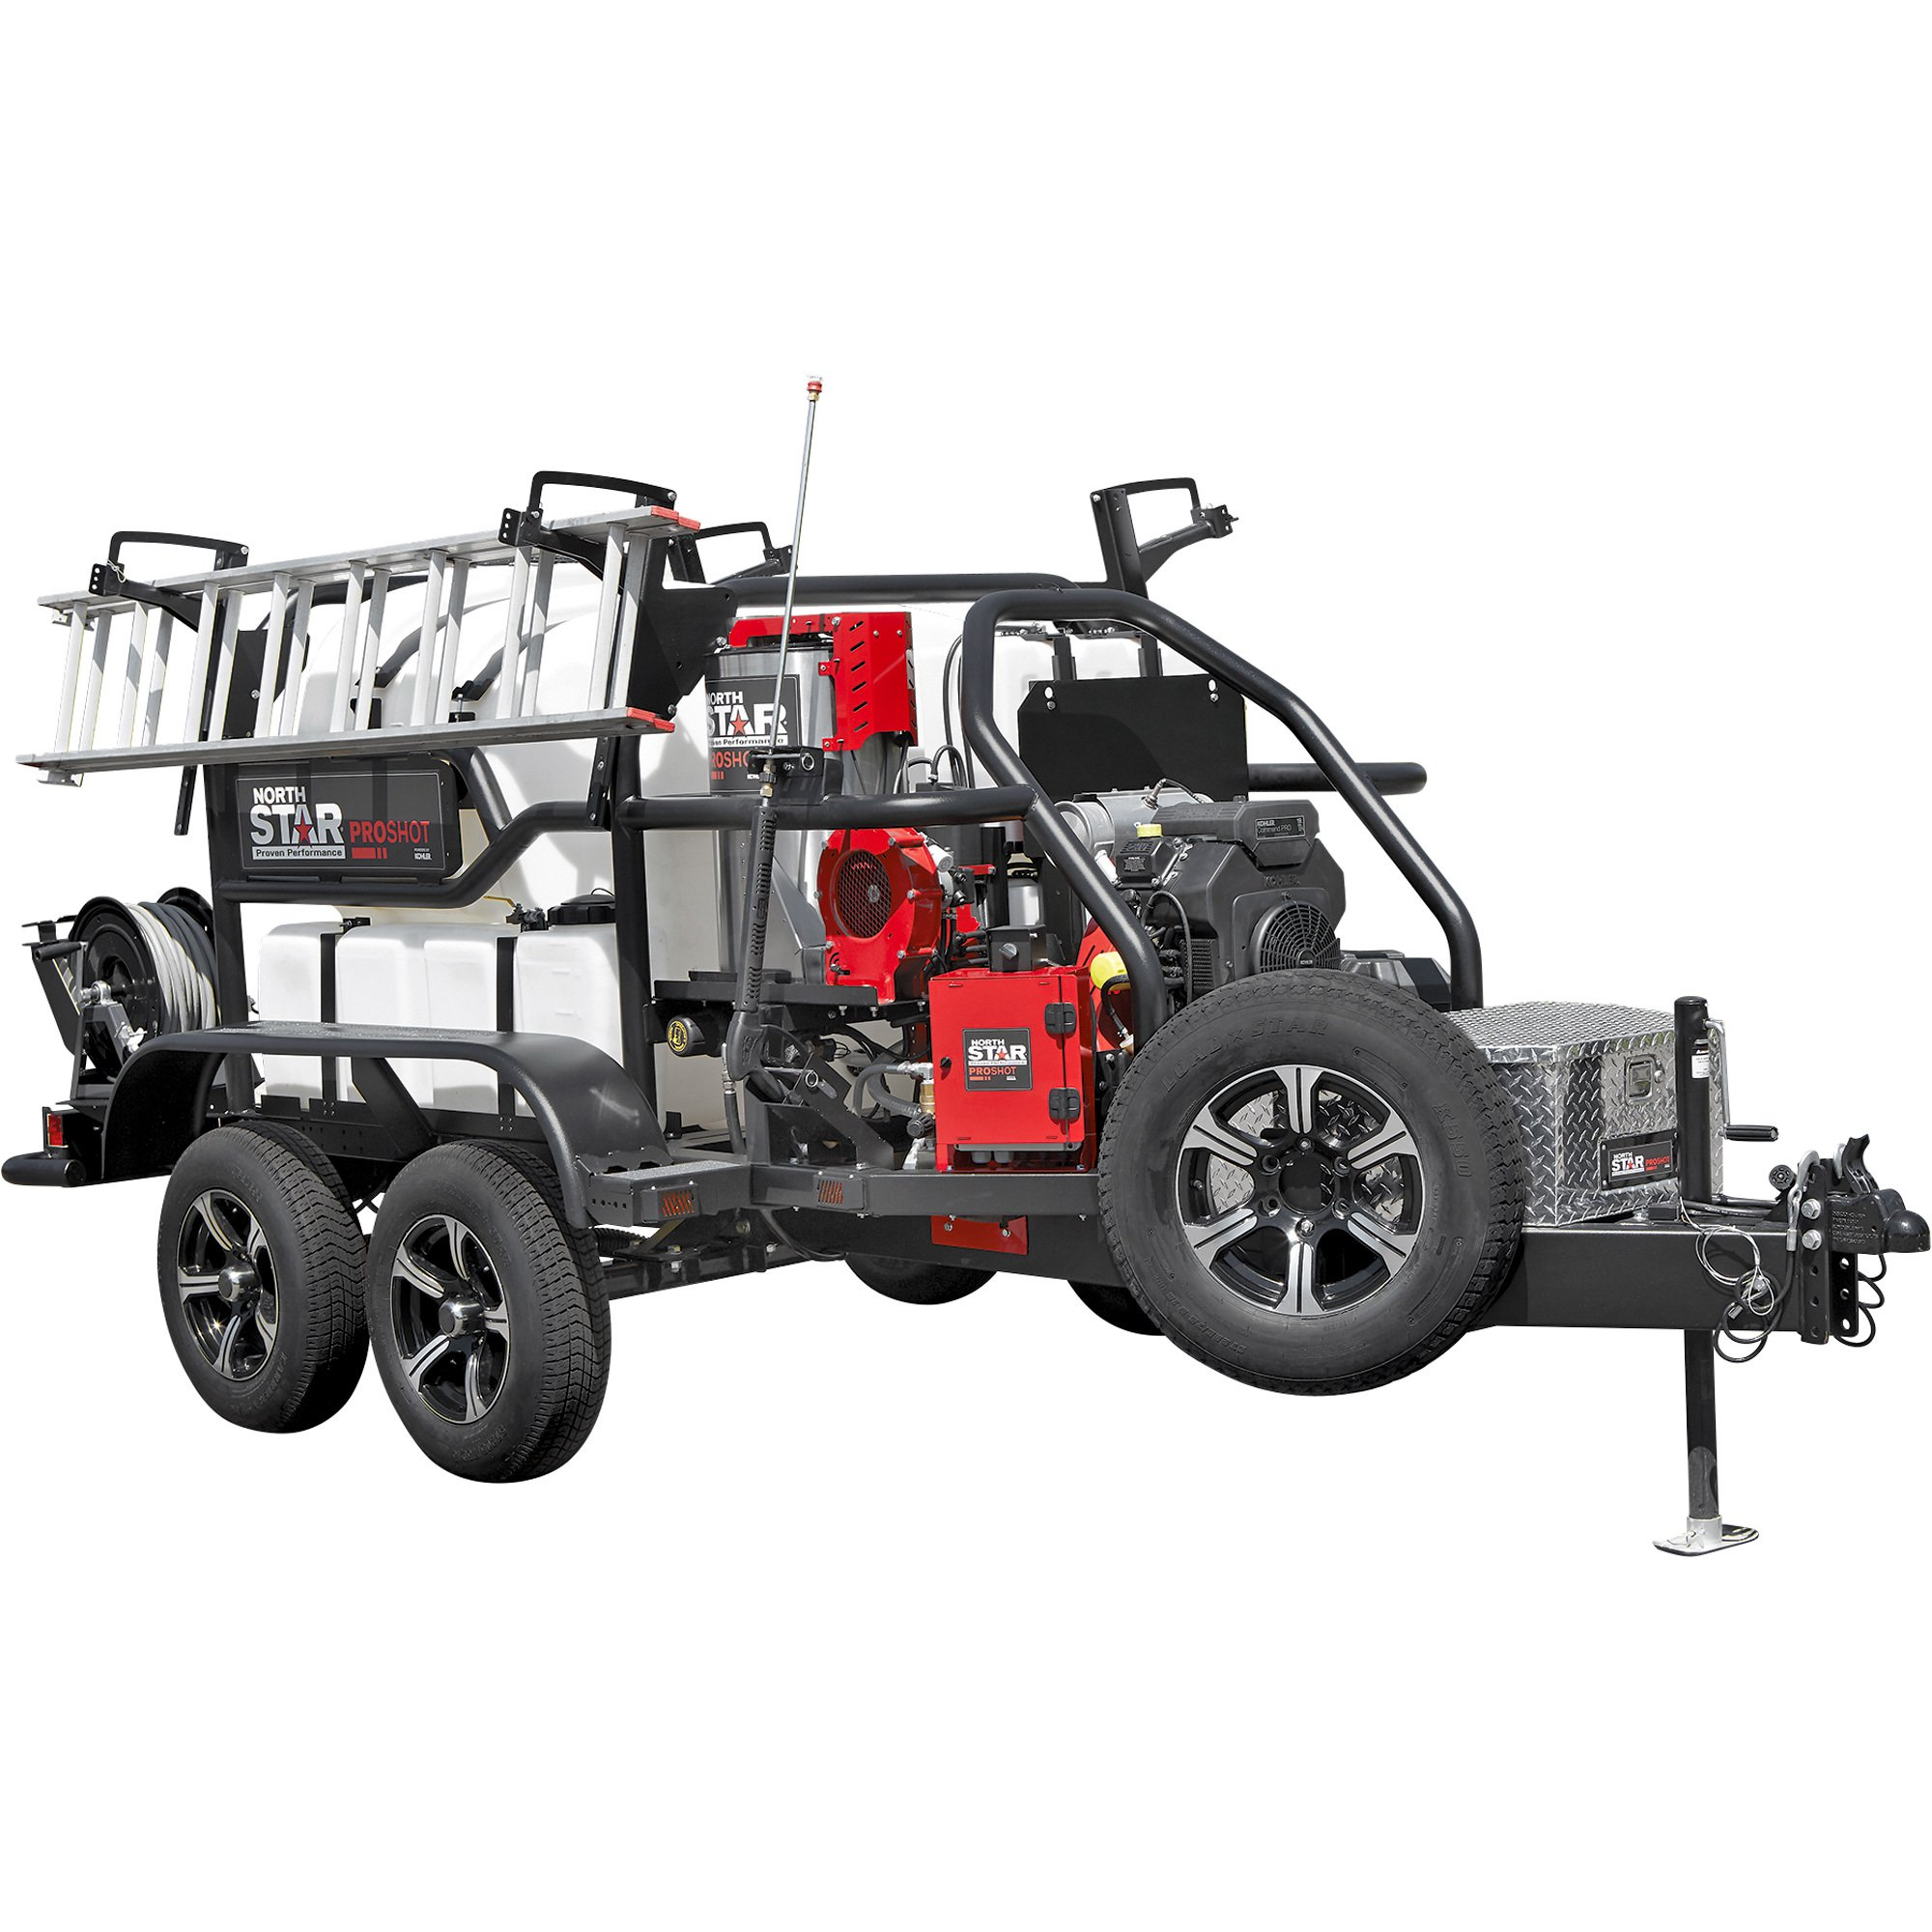 NorthStar 157563 ProShot Hot Water Commercial Pressure Washer Trailer - 4000 PSI, 5.5 GPM, Kohler Engine — FREE SHIPPING